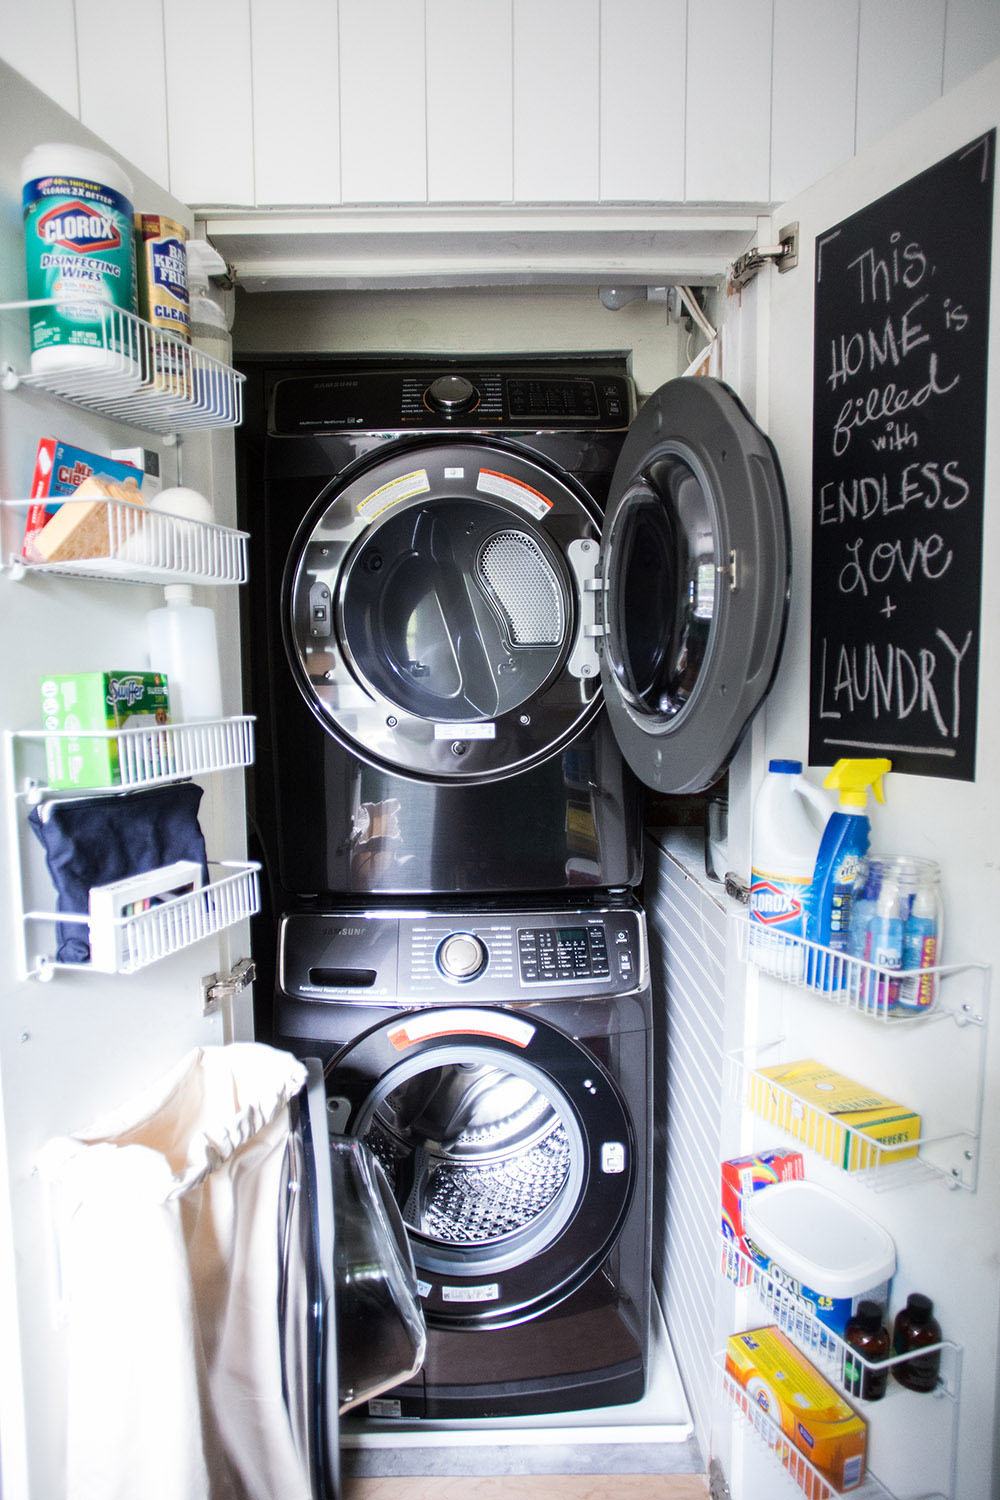 A closet with a open washing machine, a dryer, and shelves on the doors.